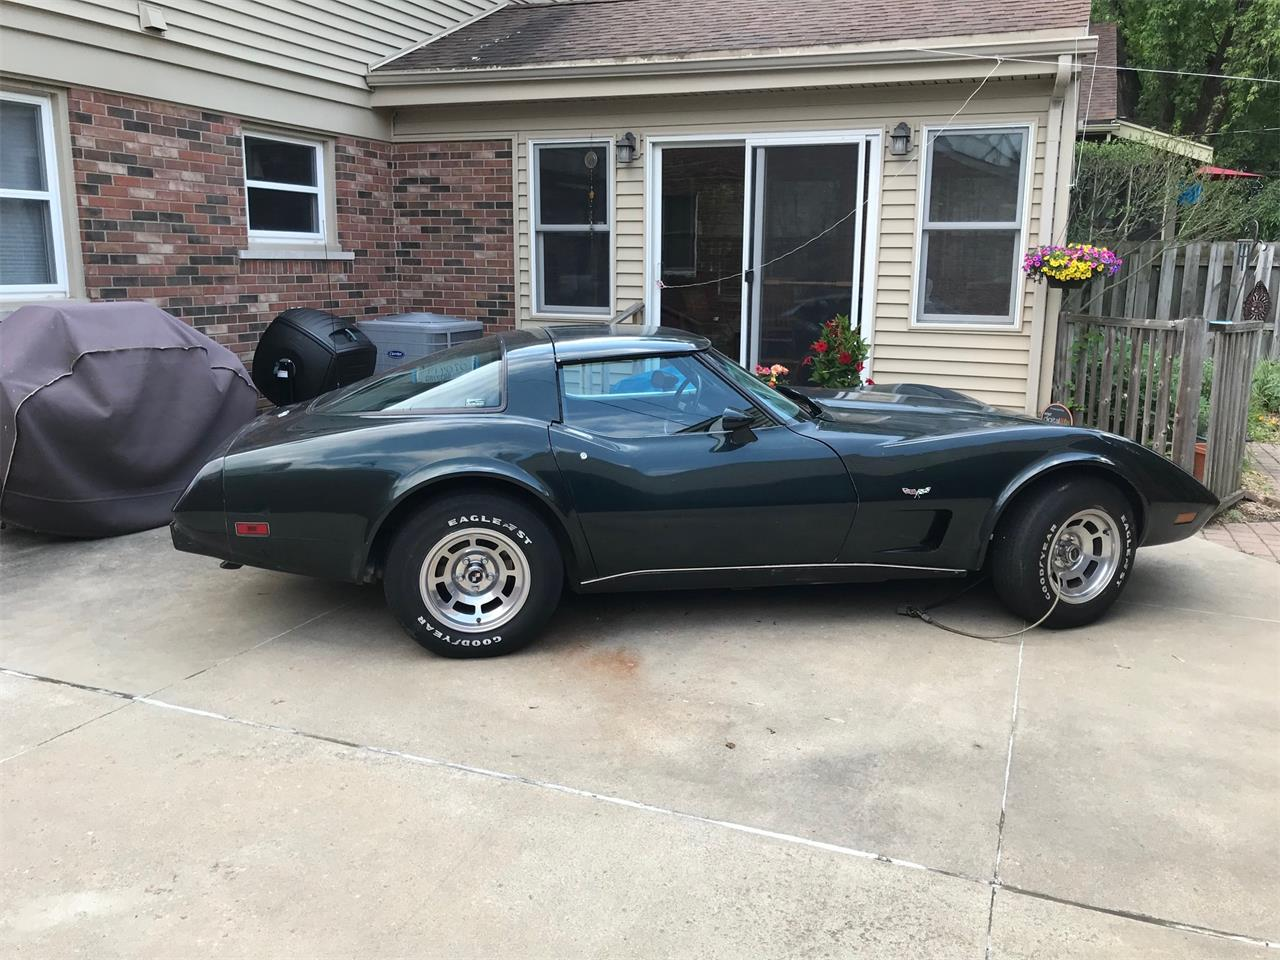 Large Picture of 1979 Chevrolet Corvette located in Michigan Offered by a Private Seller - QCU7